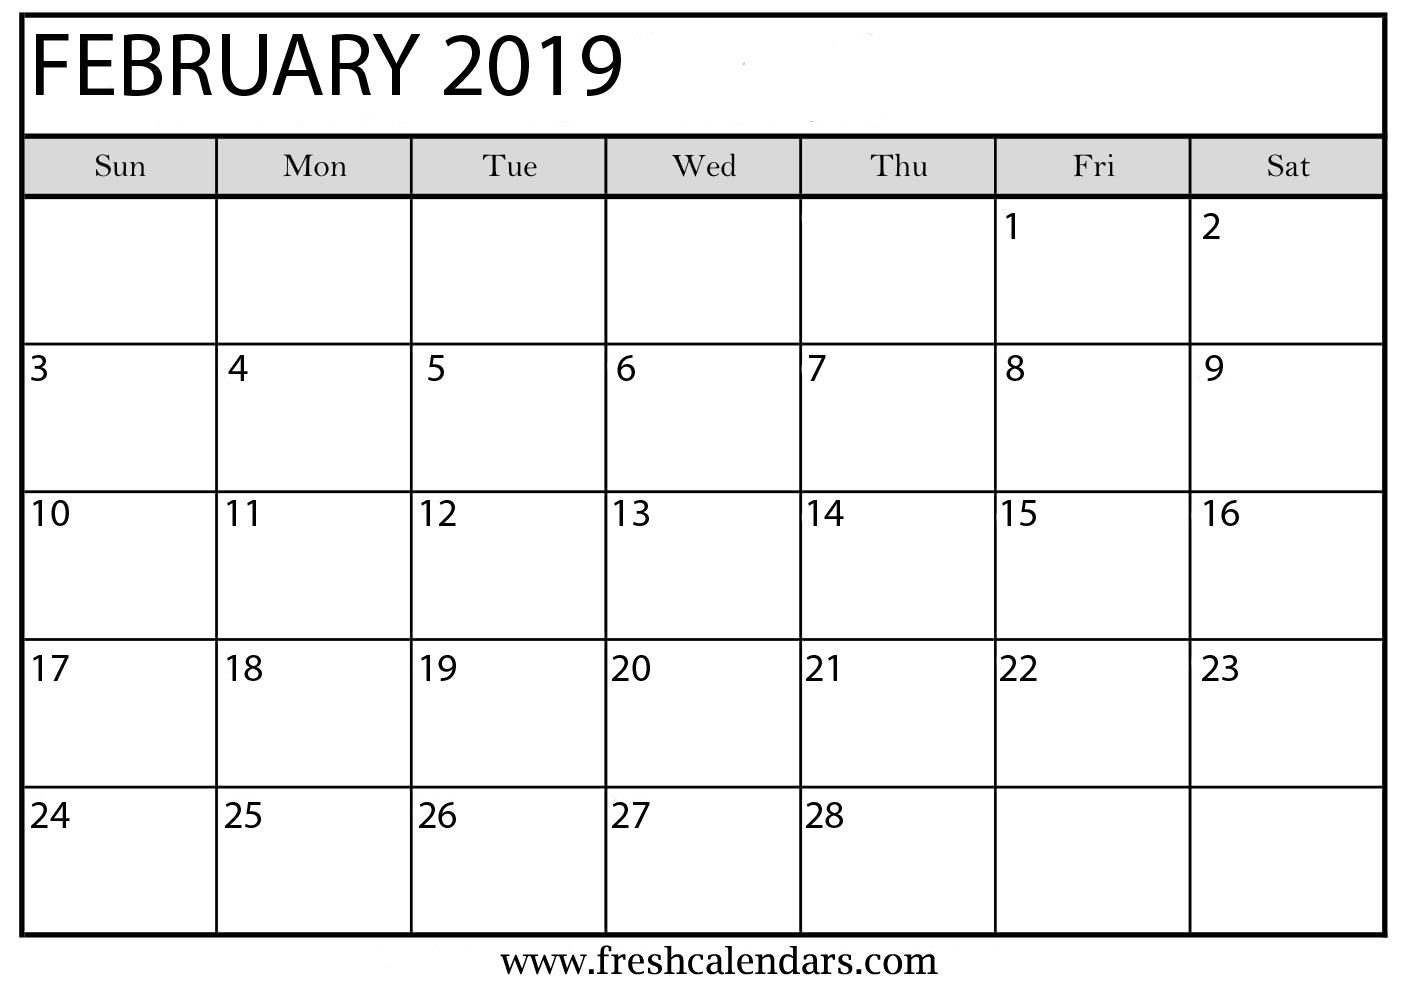 Calendars To Print February 2019 With Lines February 2019 Calendar Printable   Fresh Calendars